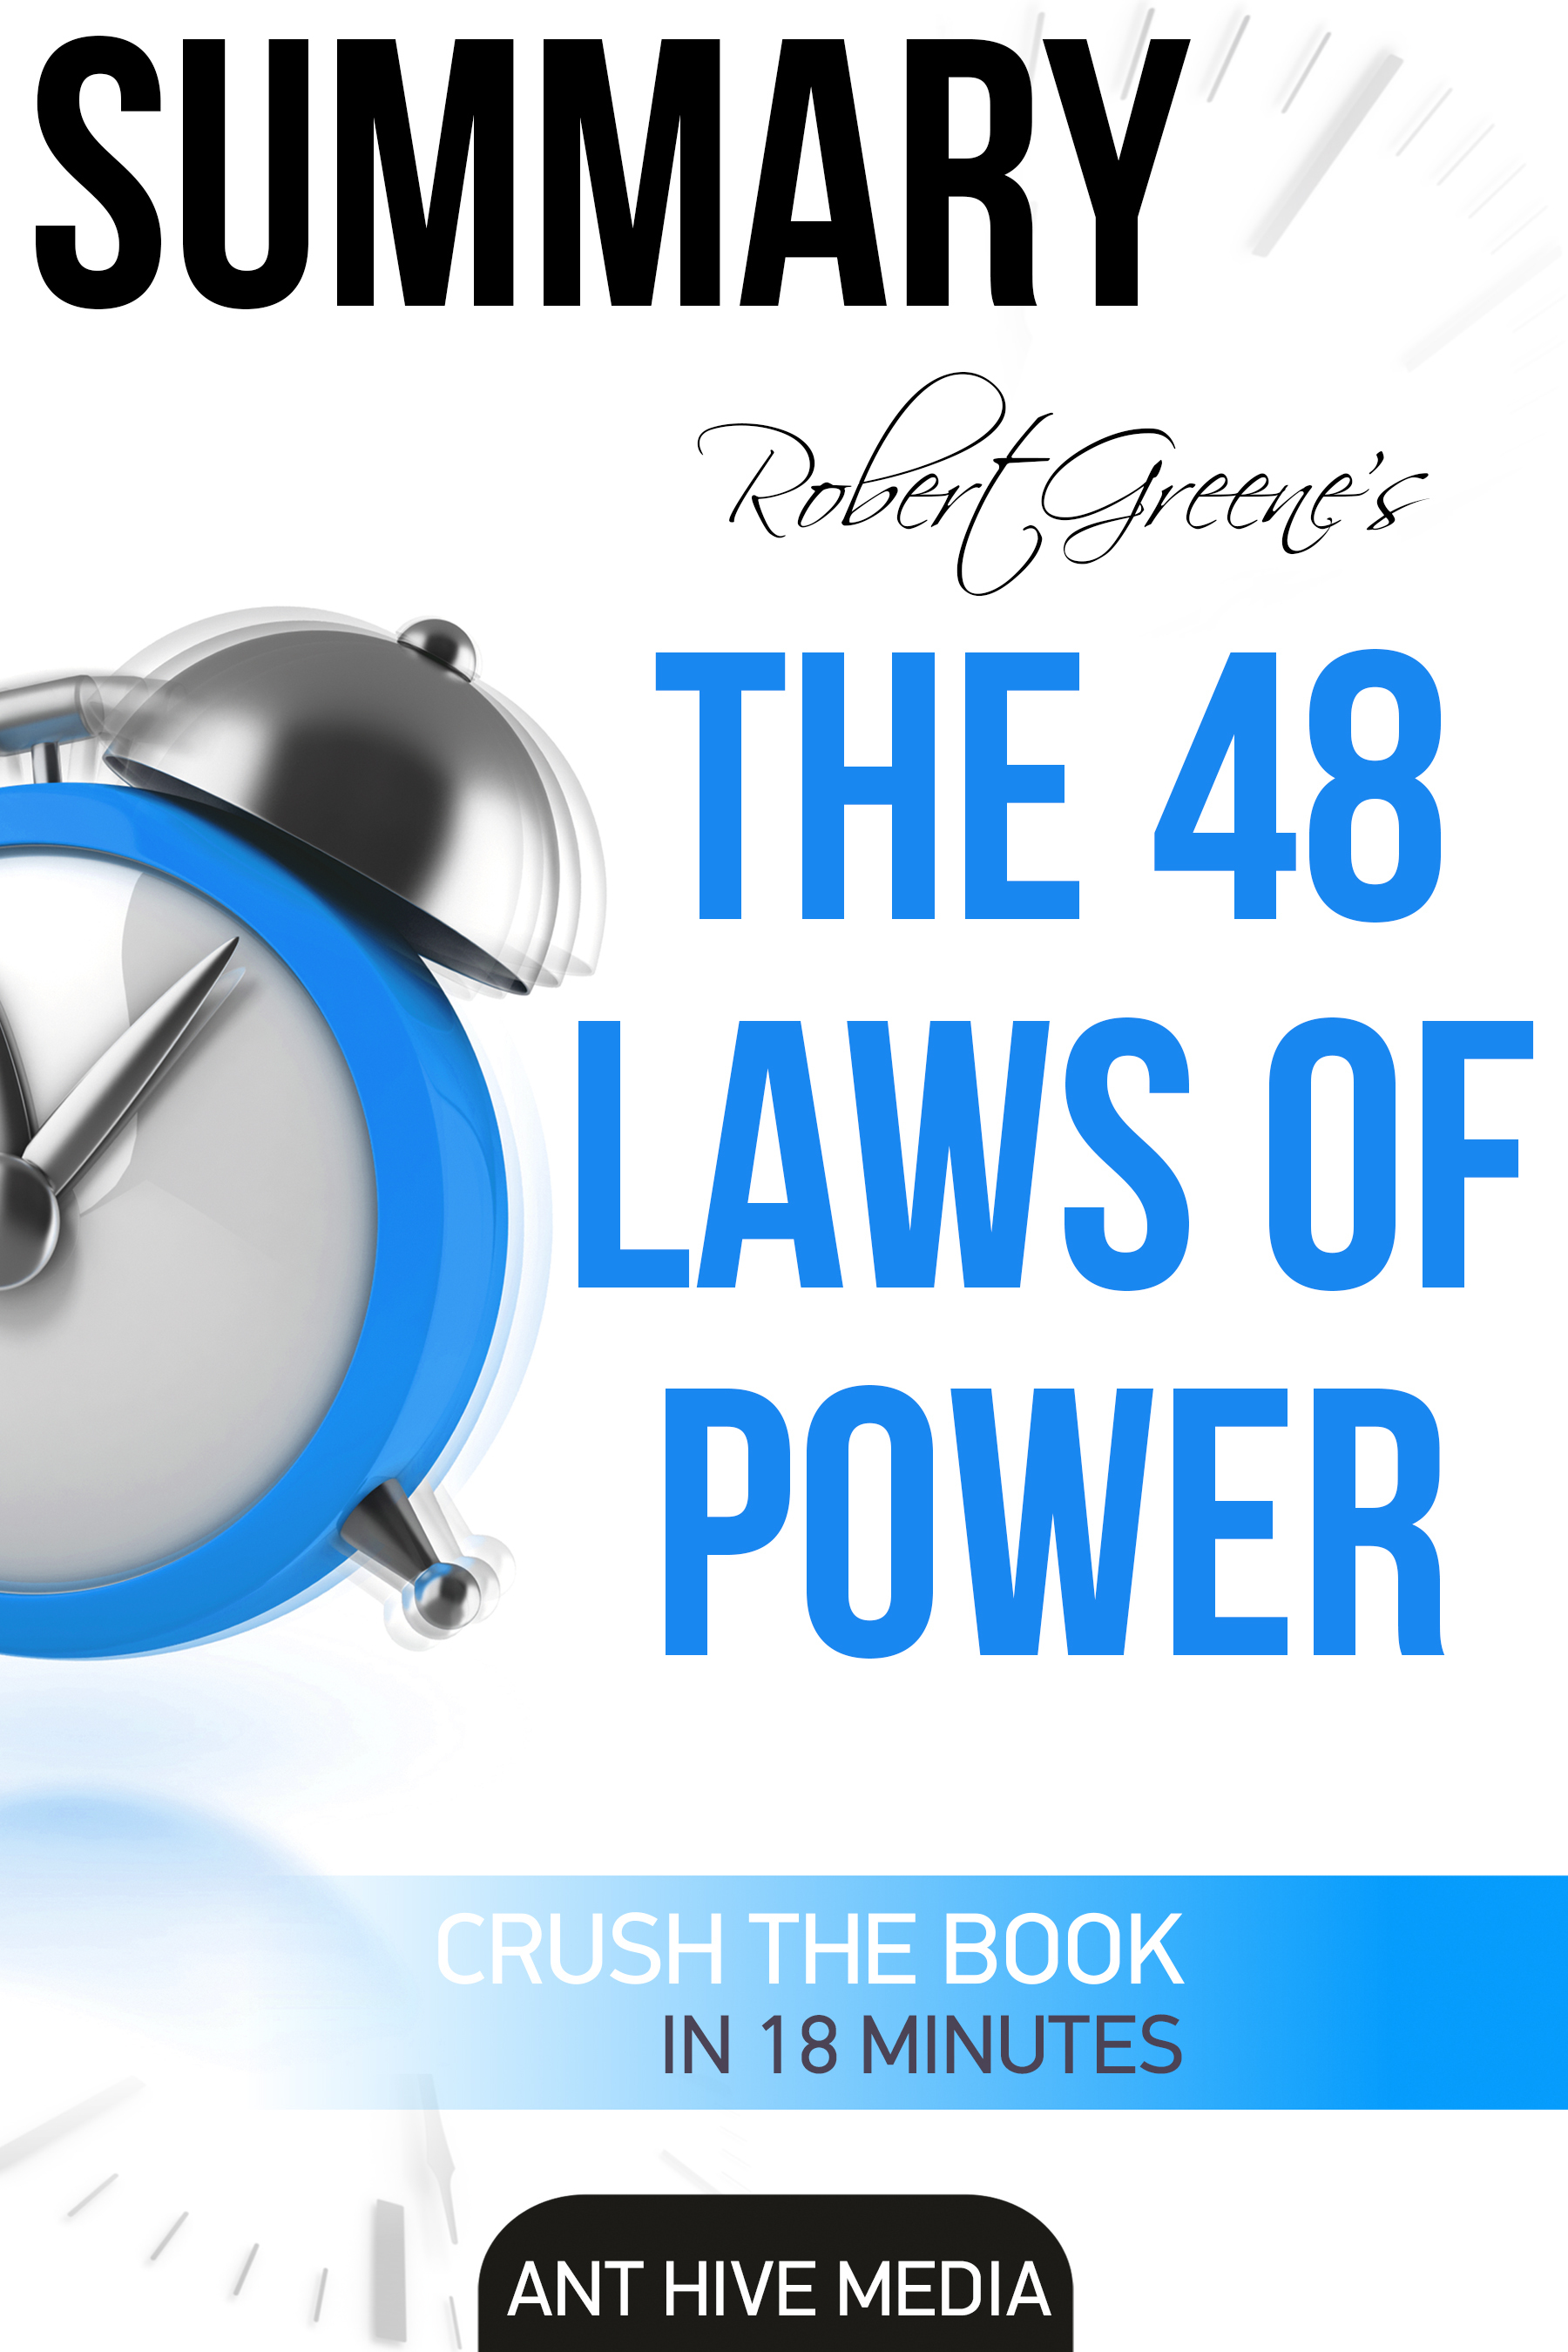 Robert Greene-The 48 Laws Of Power-Viking Penguin Group (2000)